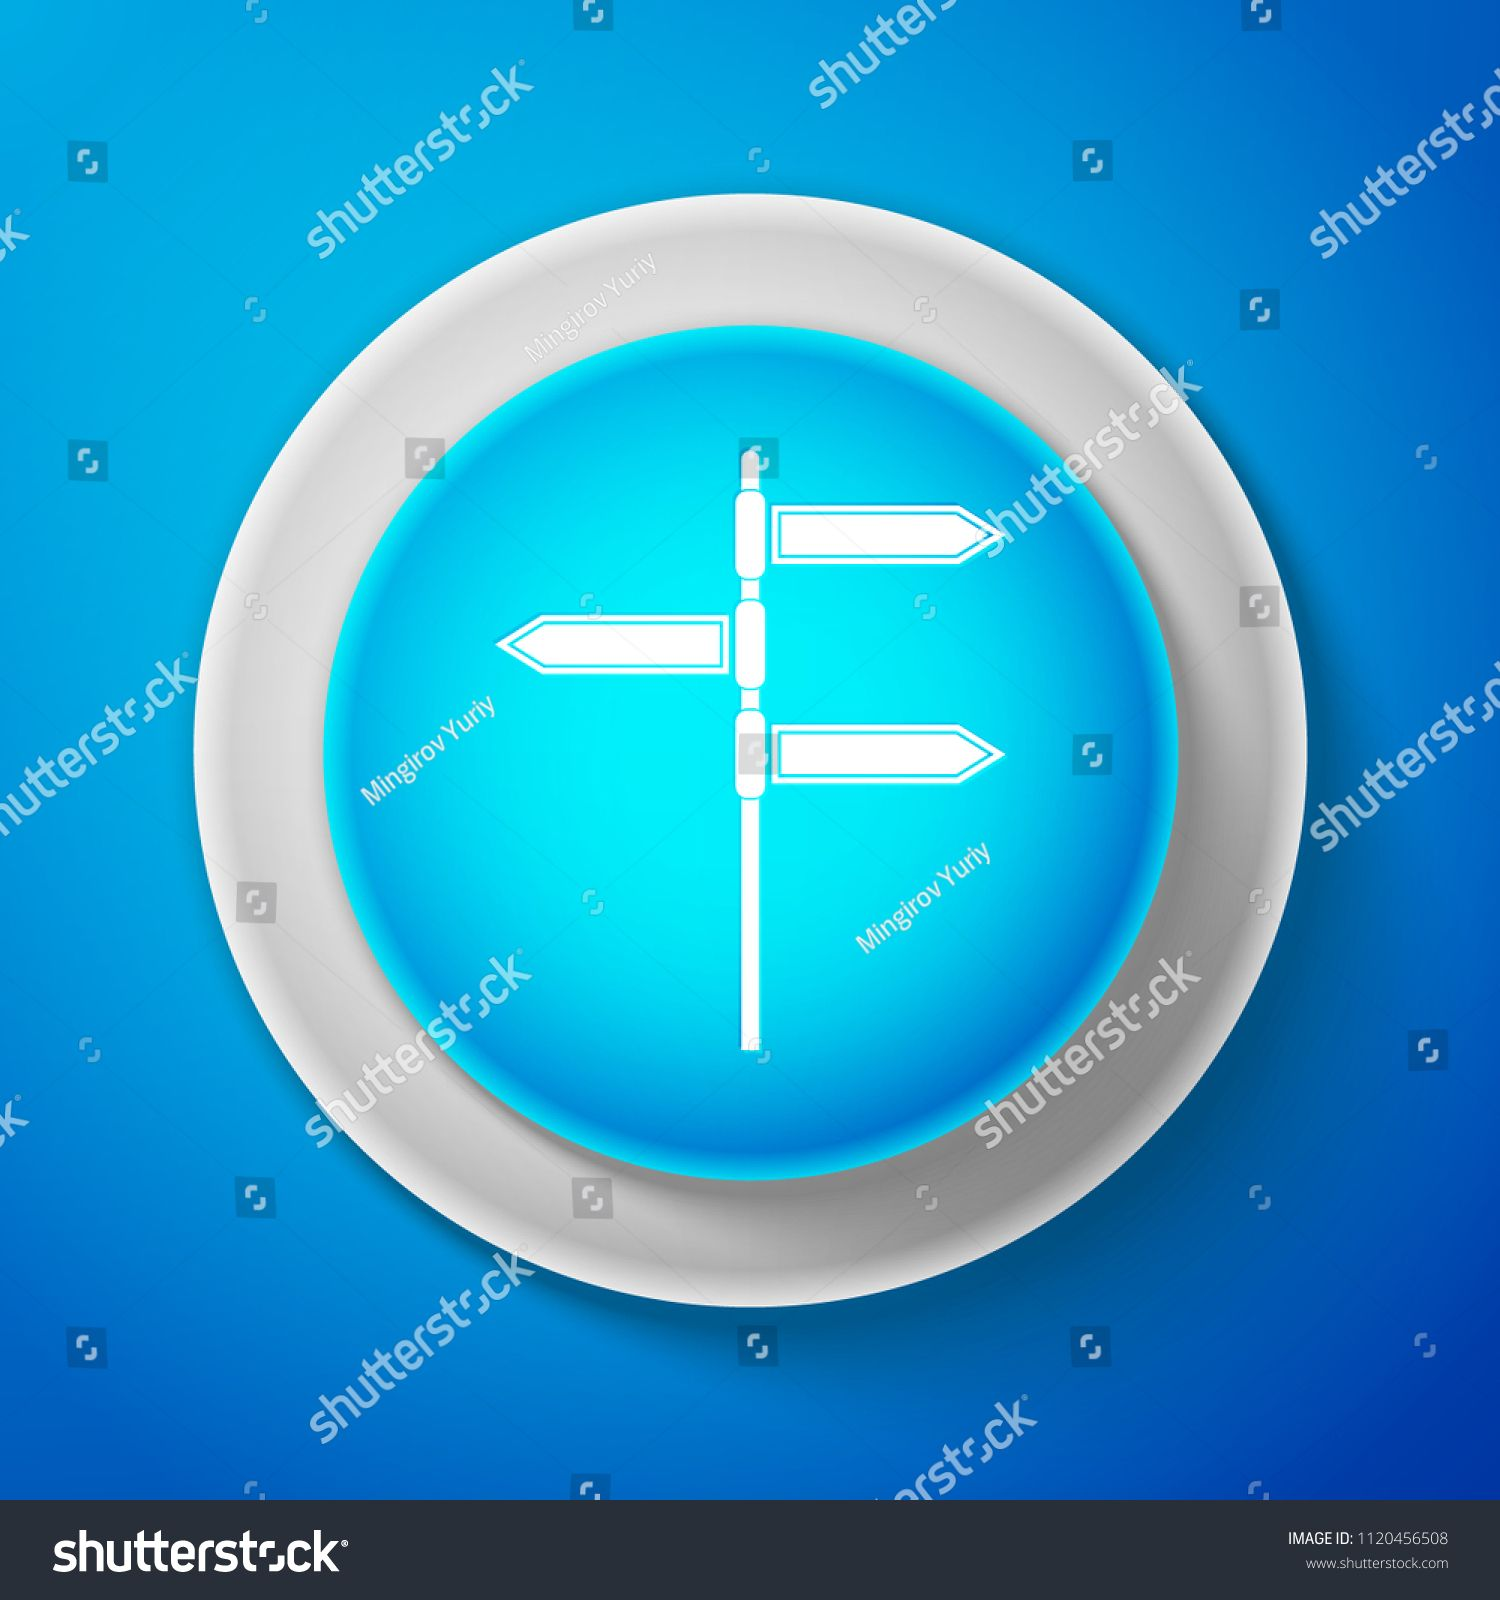 White Road traffic sign. Signpost icon isolated on blue